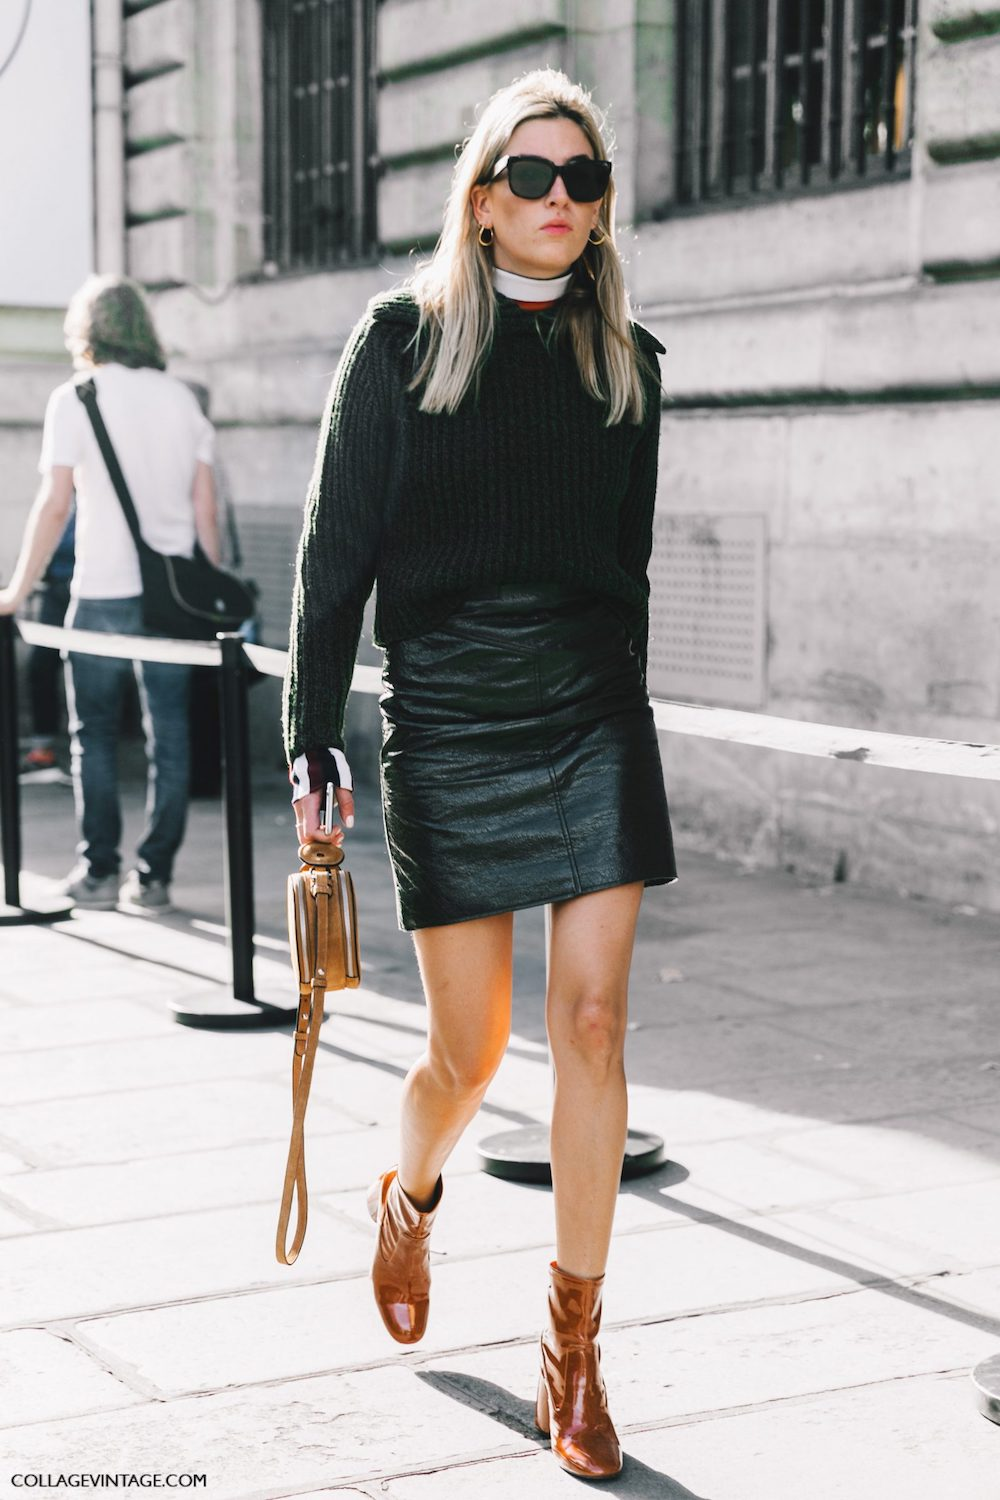 Camille Charrière Fall Outfit Inspiration – Chunky Sweater, Leather Mini Skirt, and Booties